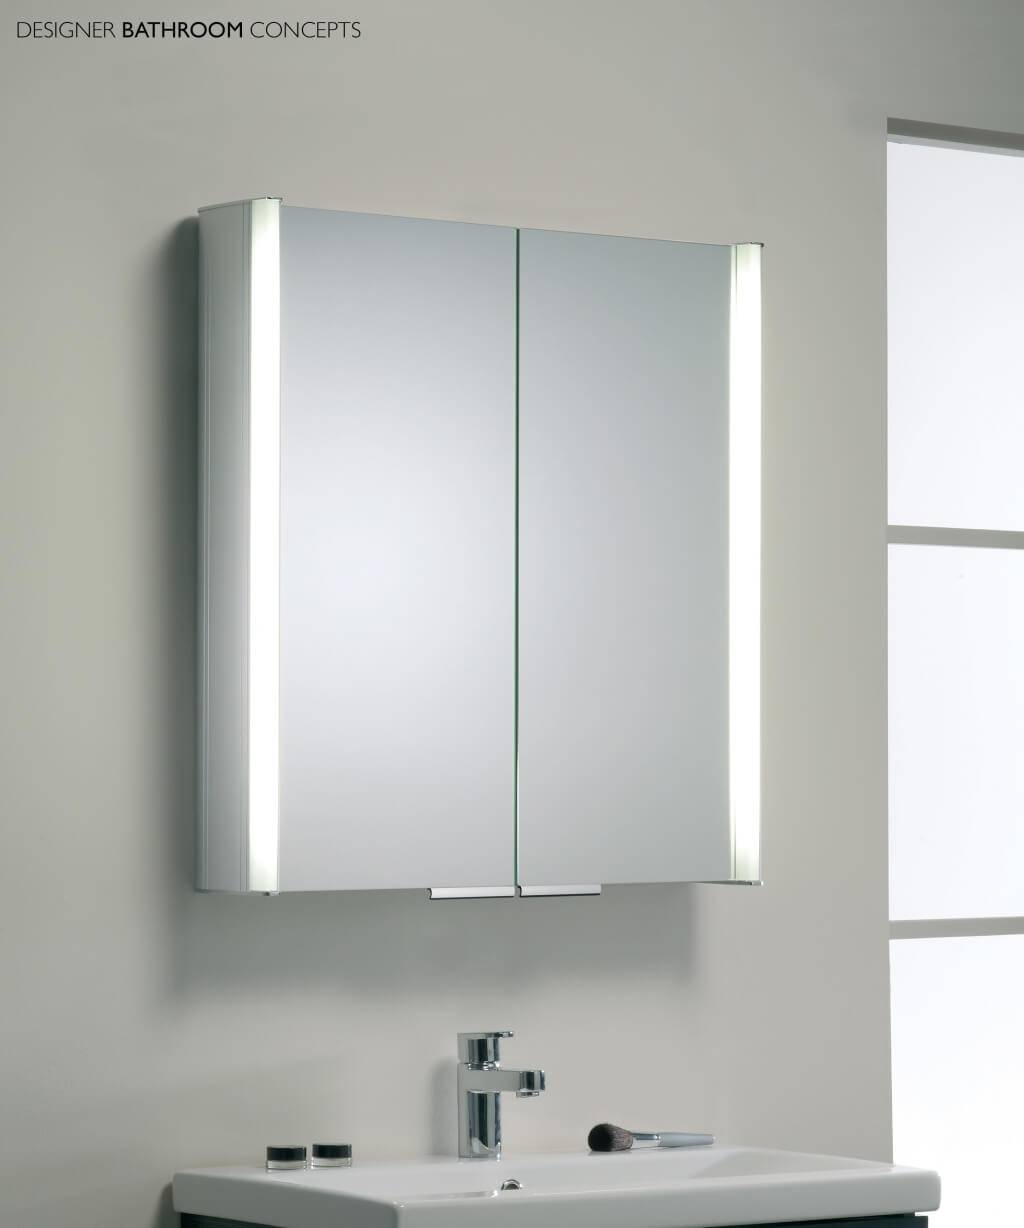 Bathroom: Appealing Bathroom Illuminated Mirror Cabinet And - Benevola within Black Cabinet Mirrors (Image 4 of 15)